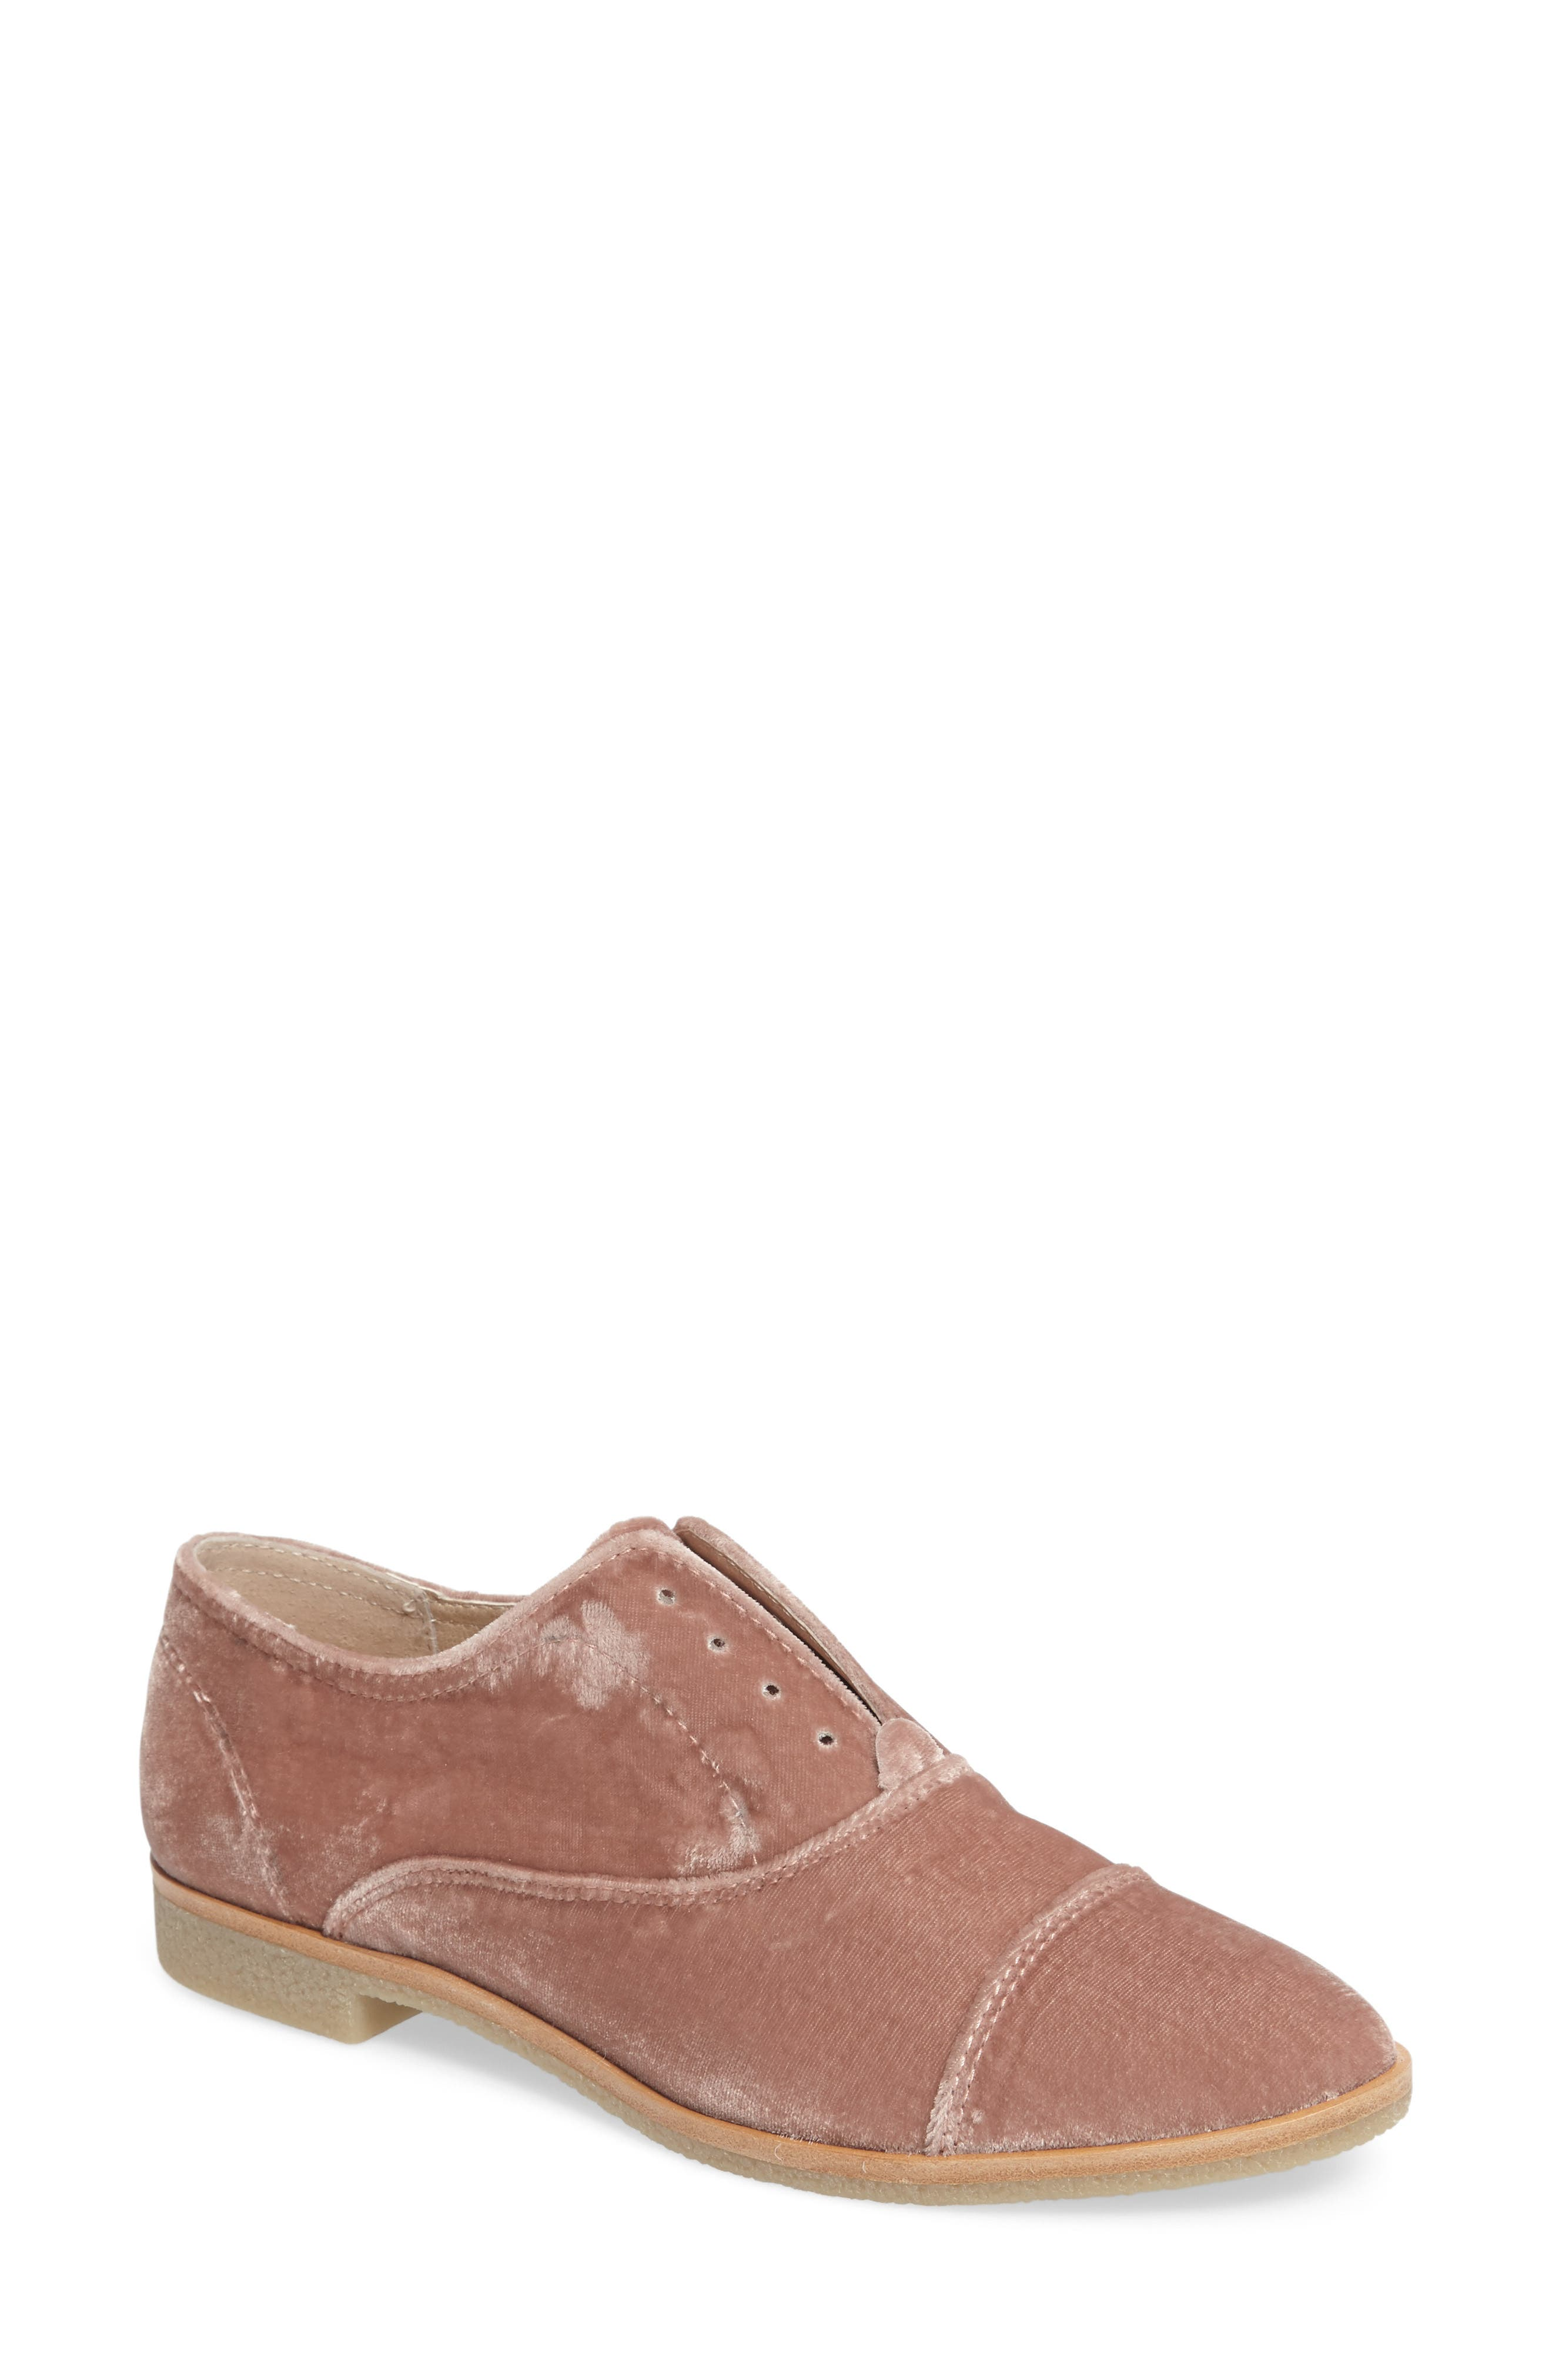 Dolce Vita 'Cooper' Cap Toe Oxford (Women)